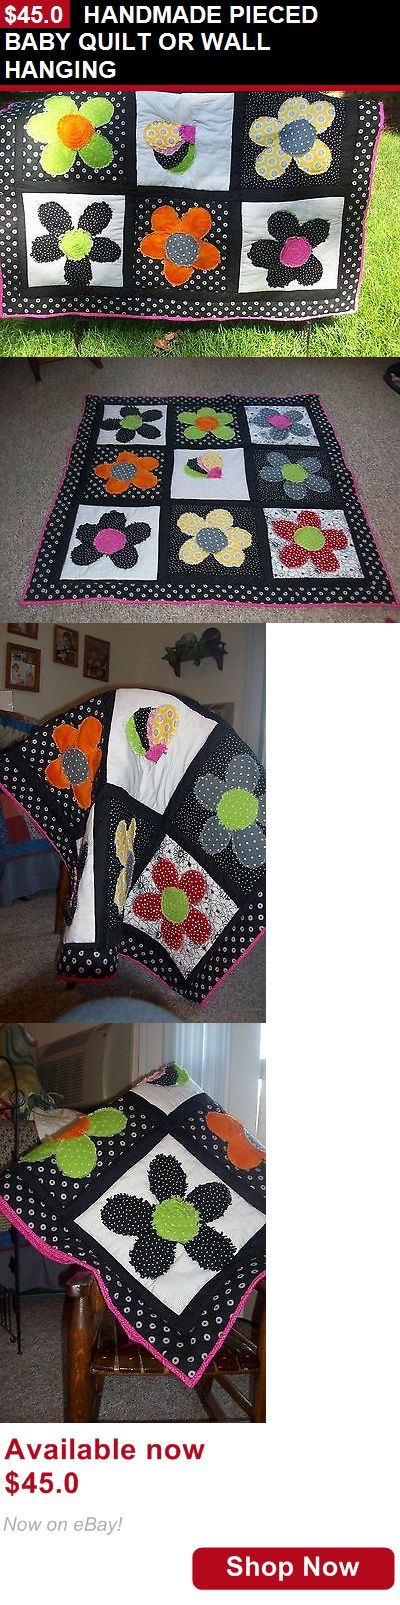 Quilts And Coverlets: Handmade Pieced Baby Quilt Or Wall Hanging BUY IT NOW ONLY: $45.0